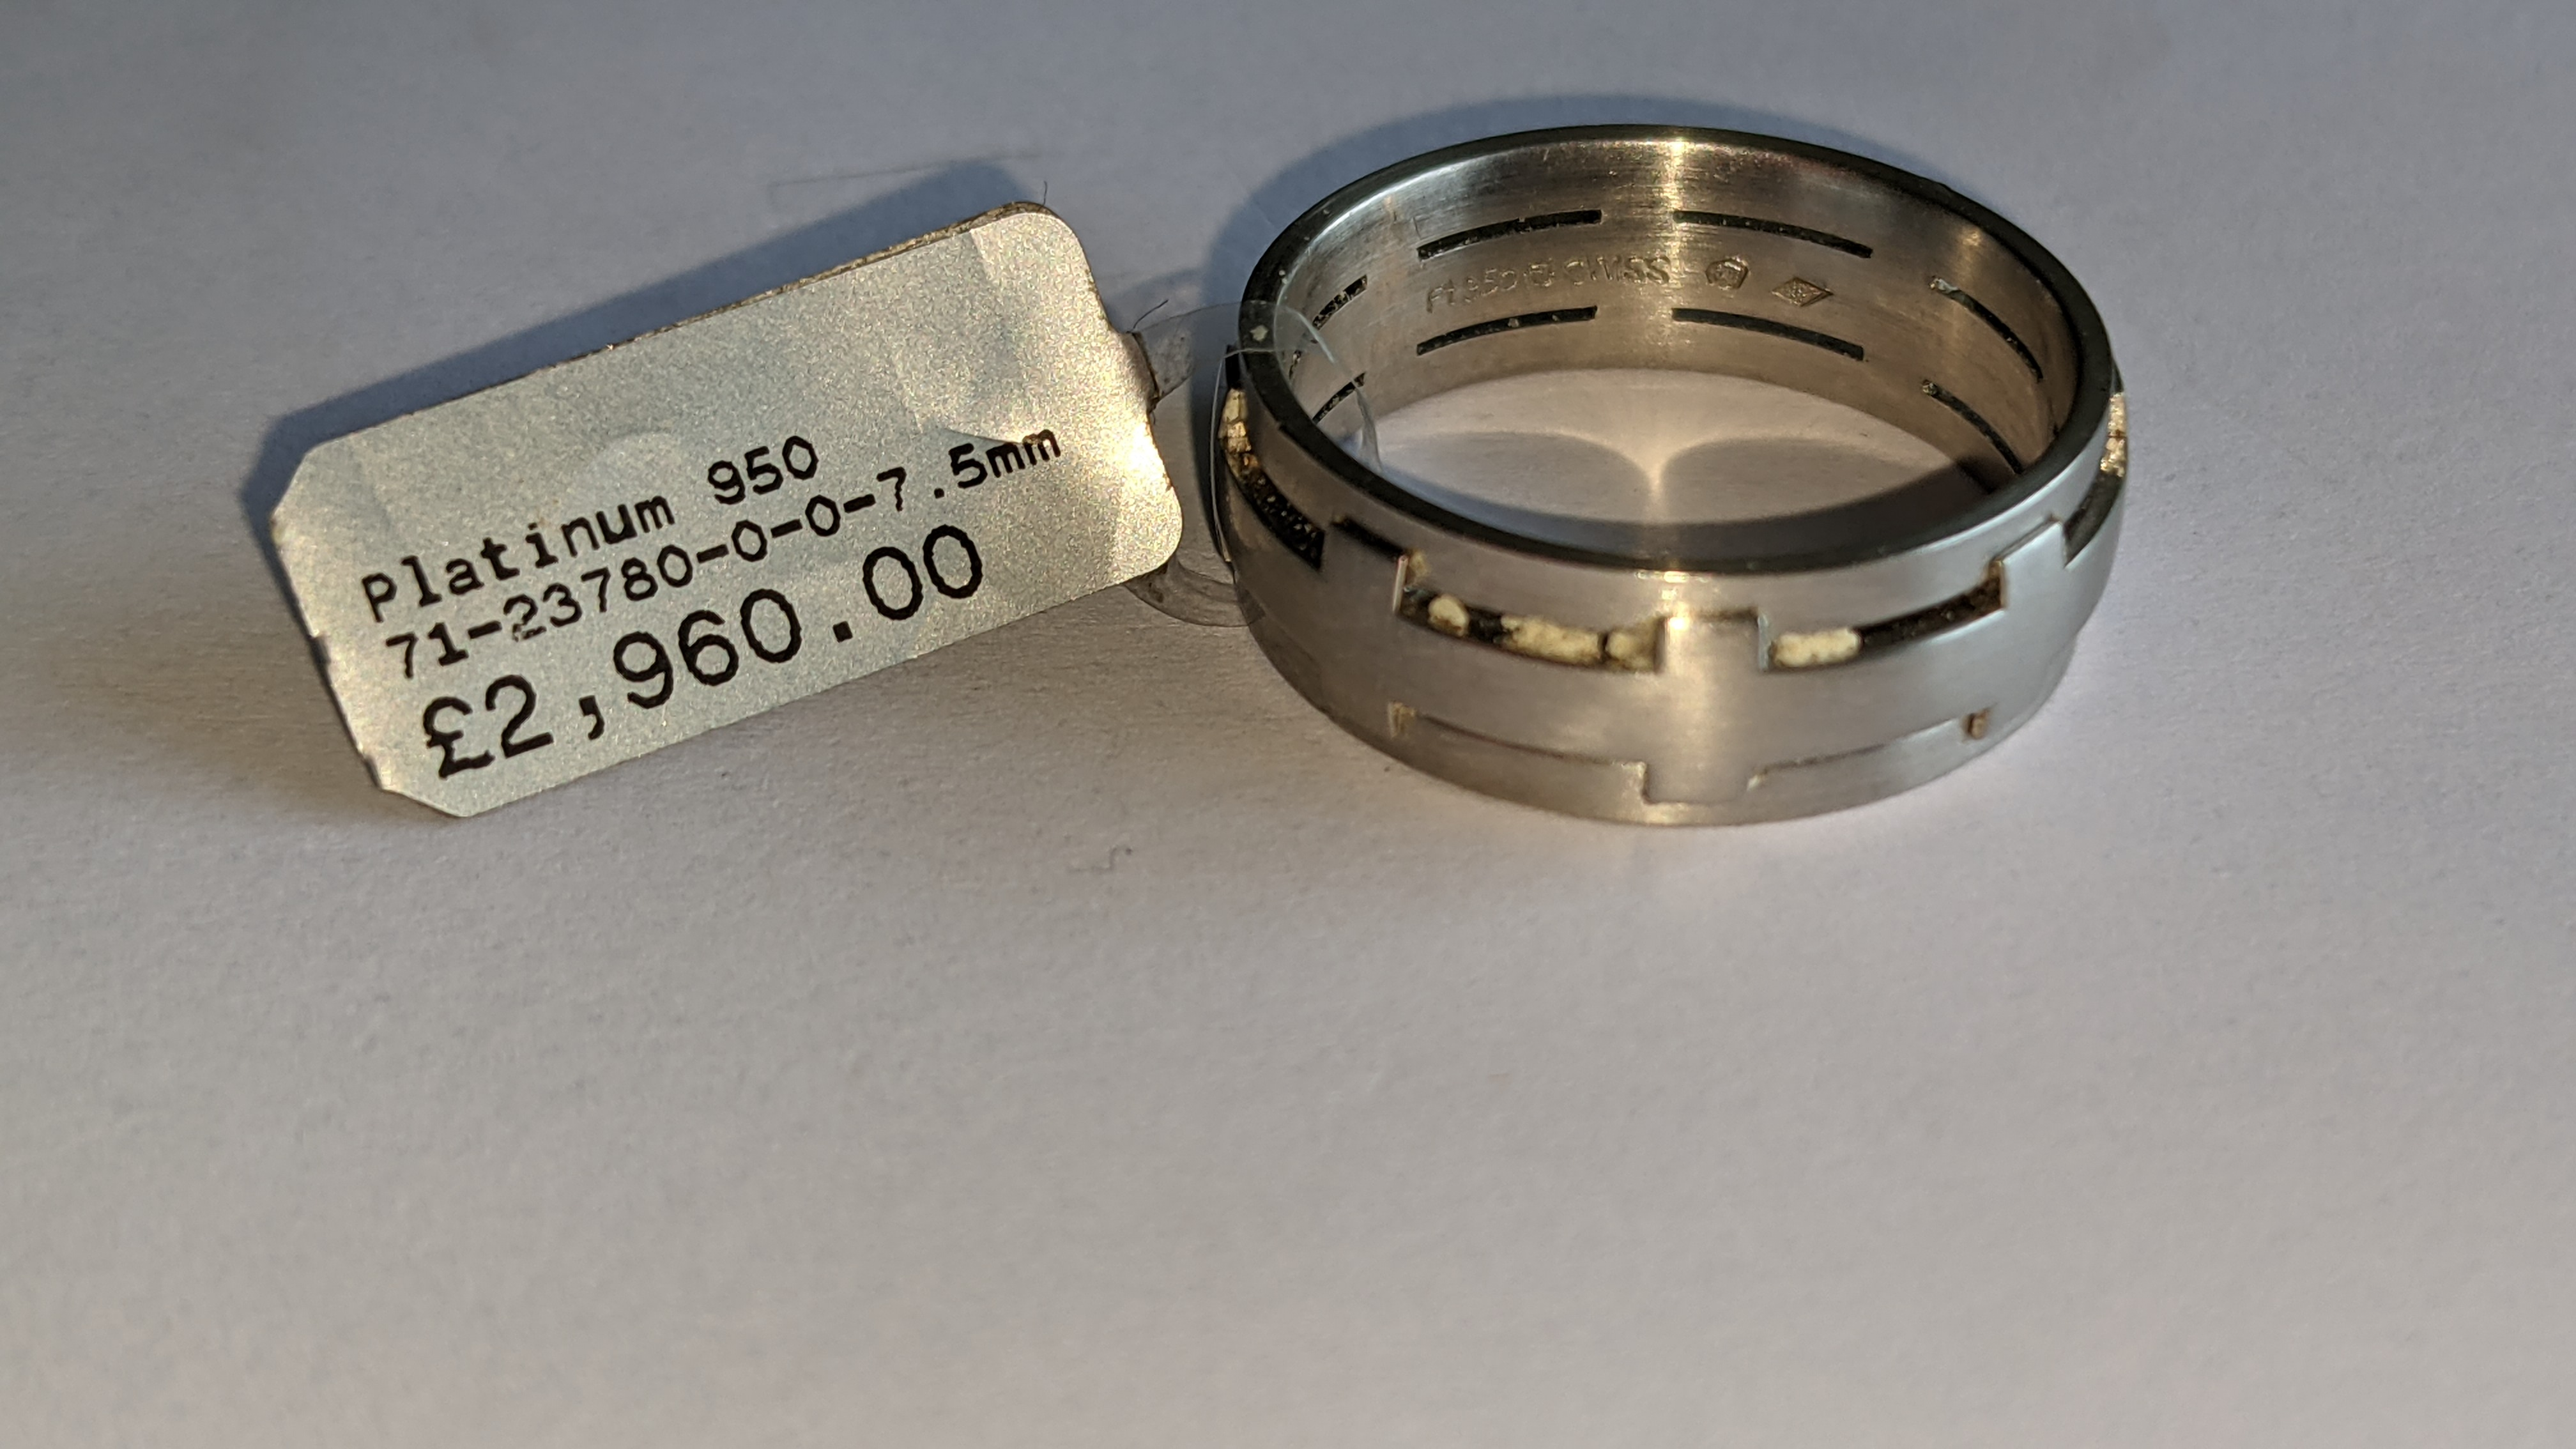 Platinum 950 ring in matt & polished finish, 7.5mm wide. RRP £2,960 - Image 6 of 15